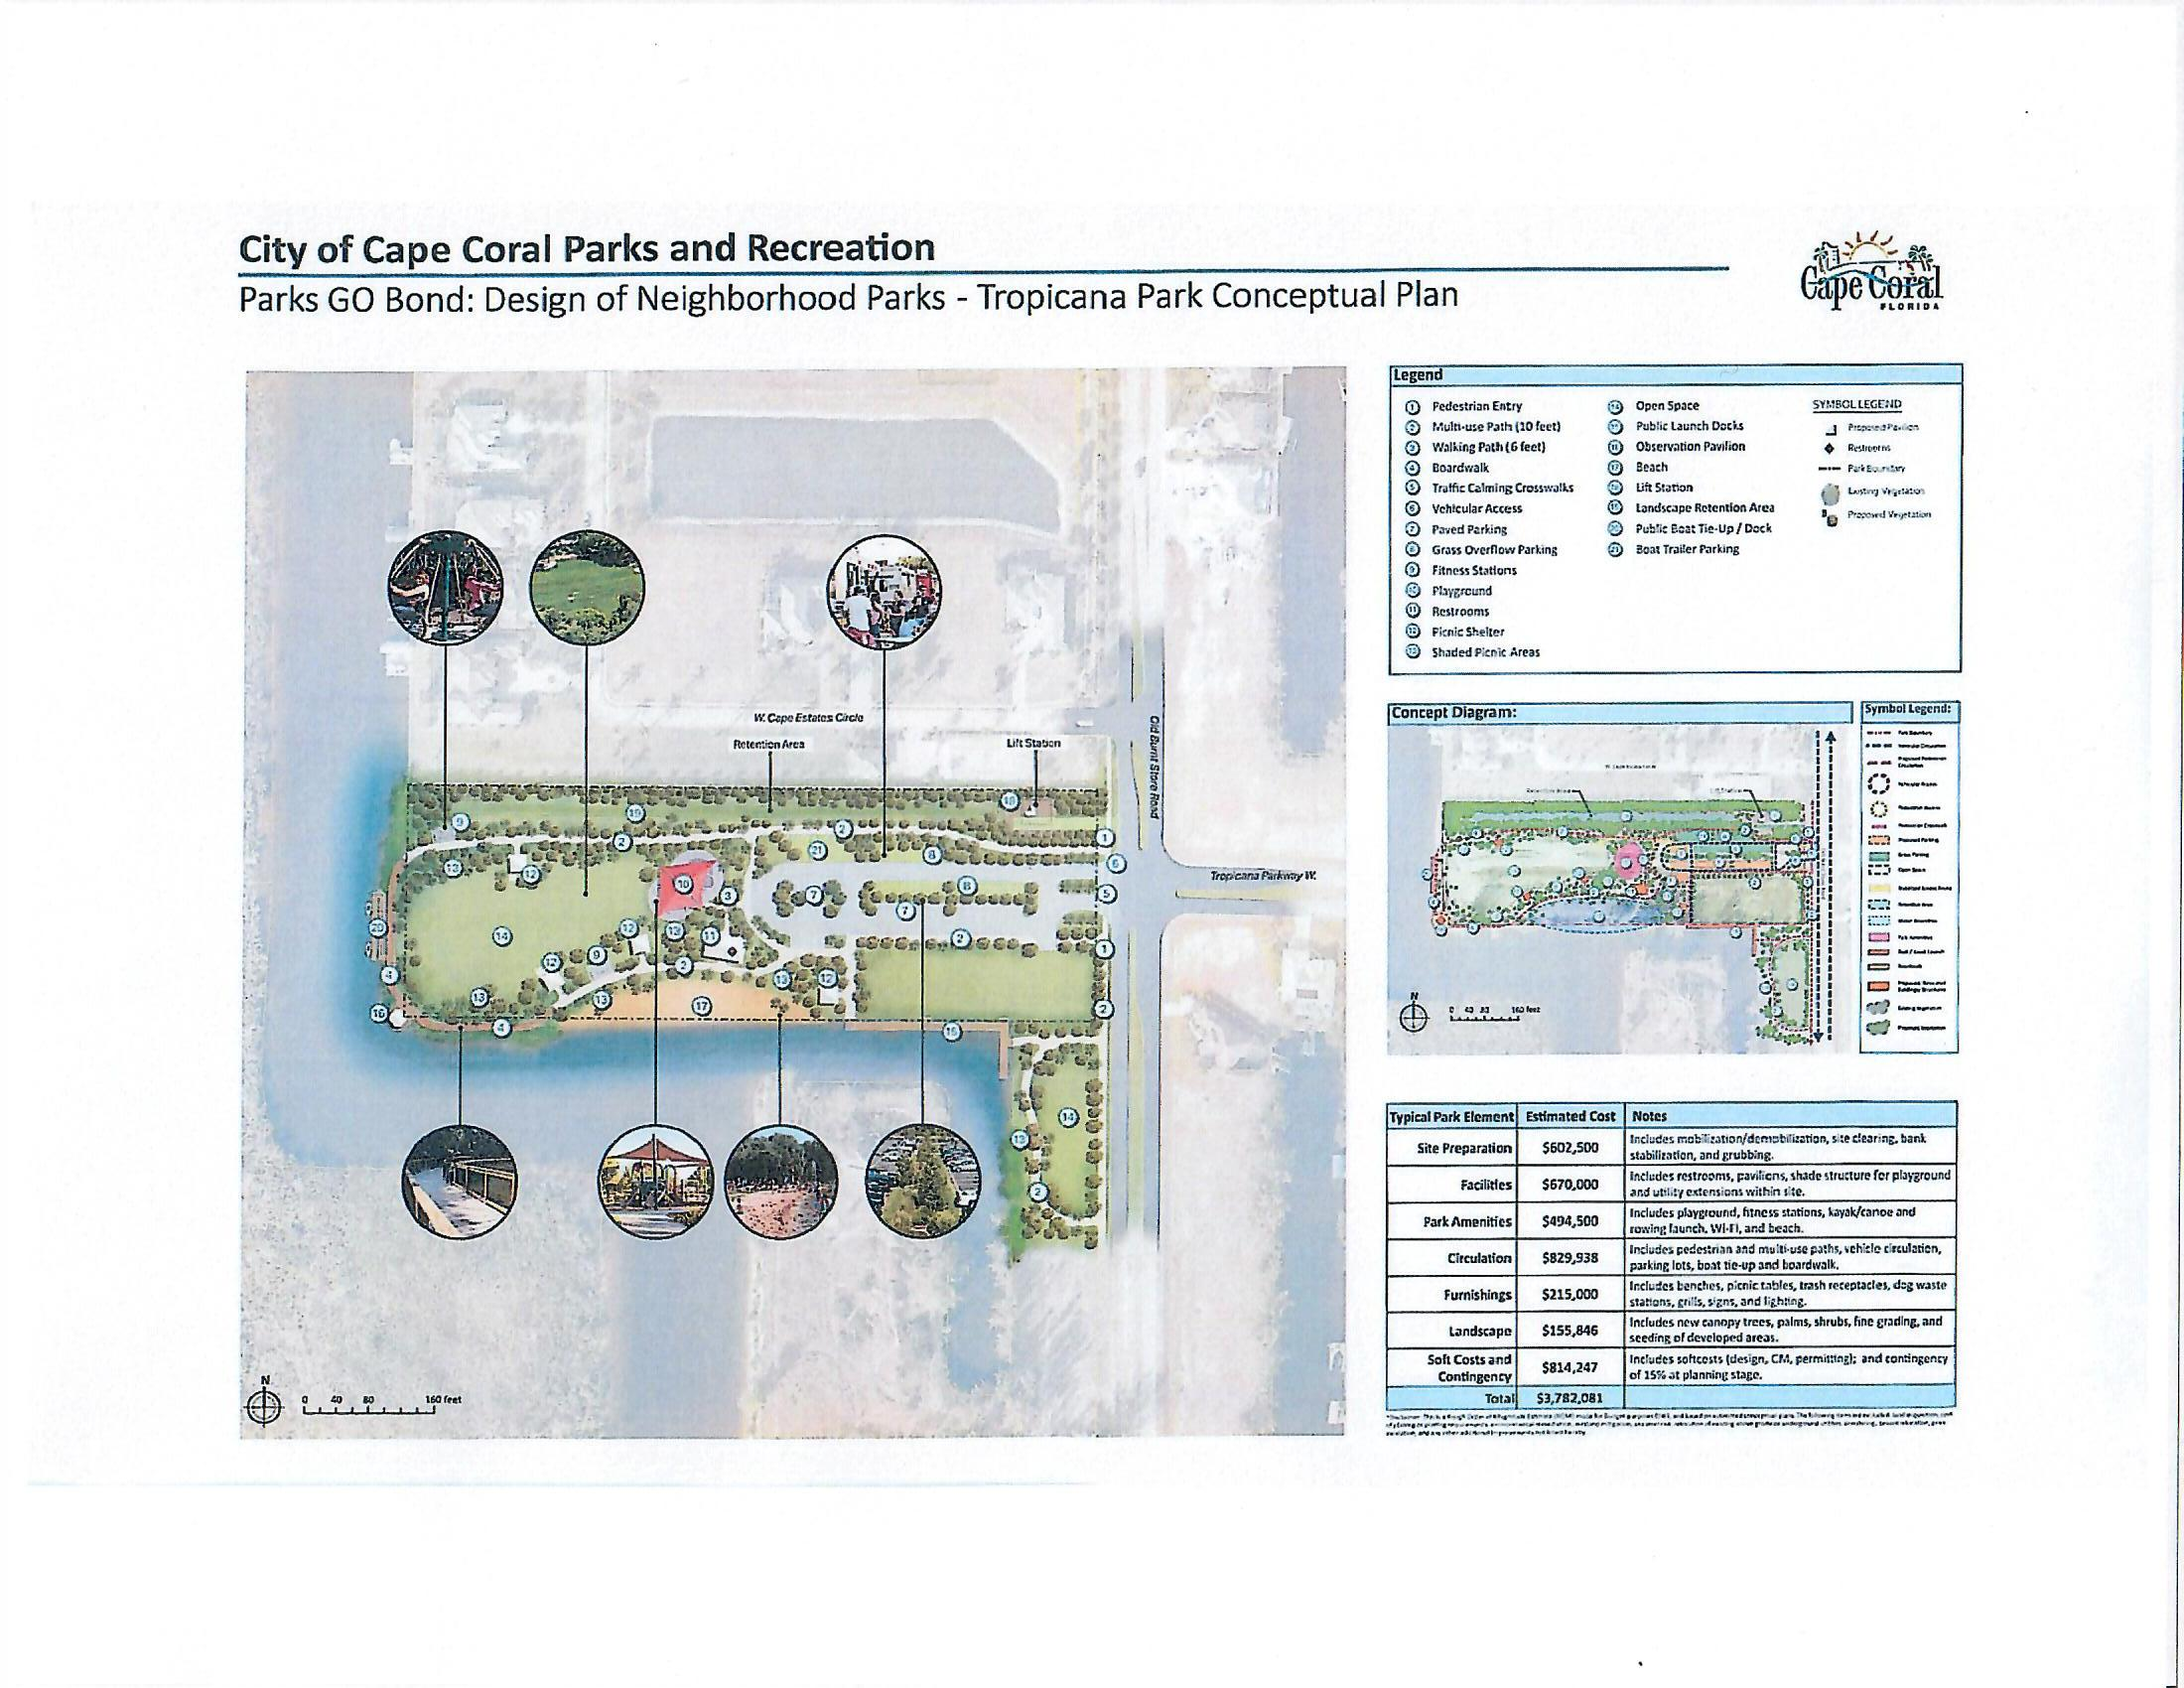 Tropicana Park Design Plan